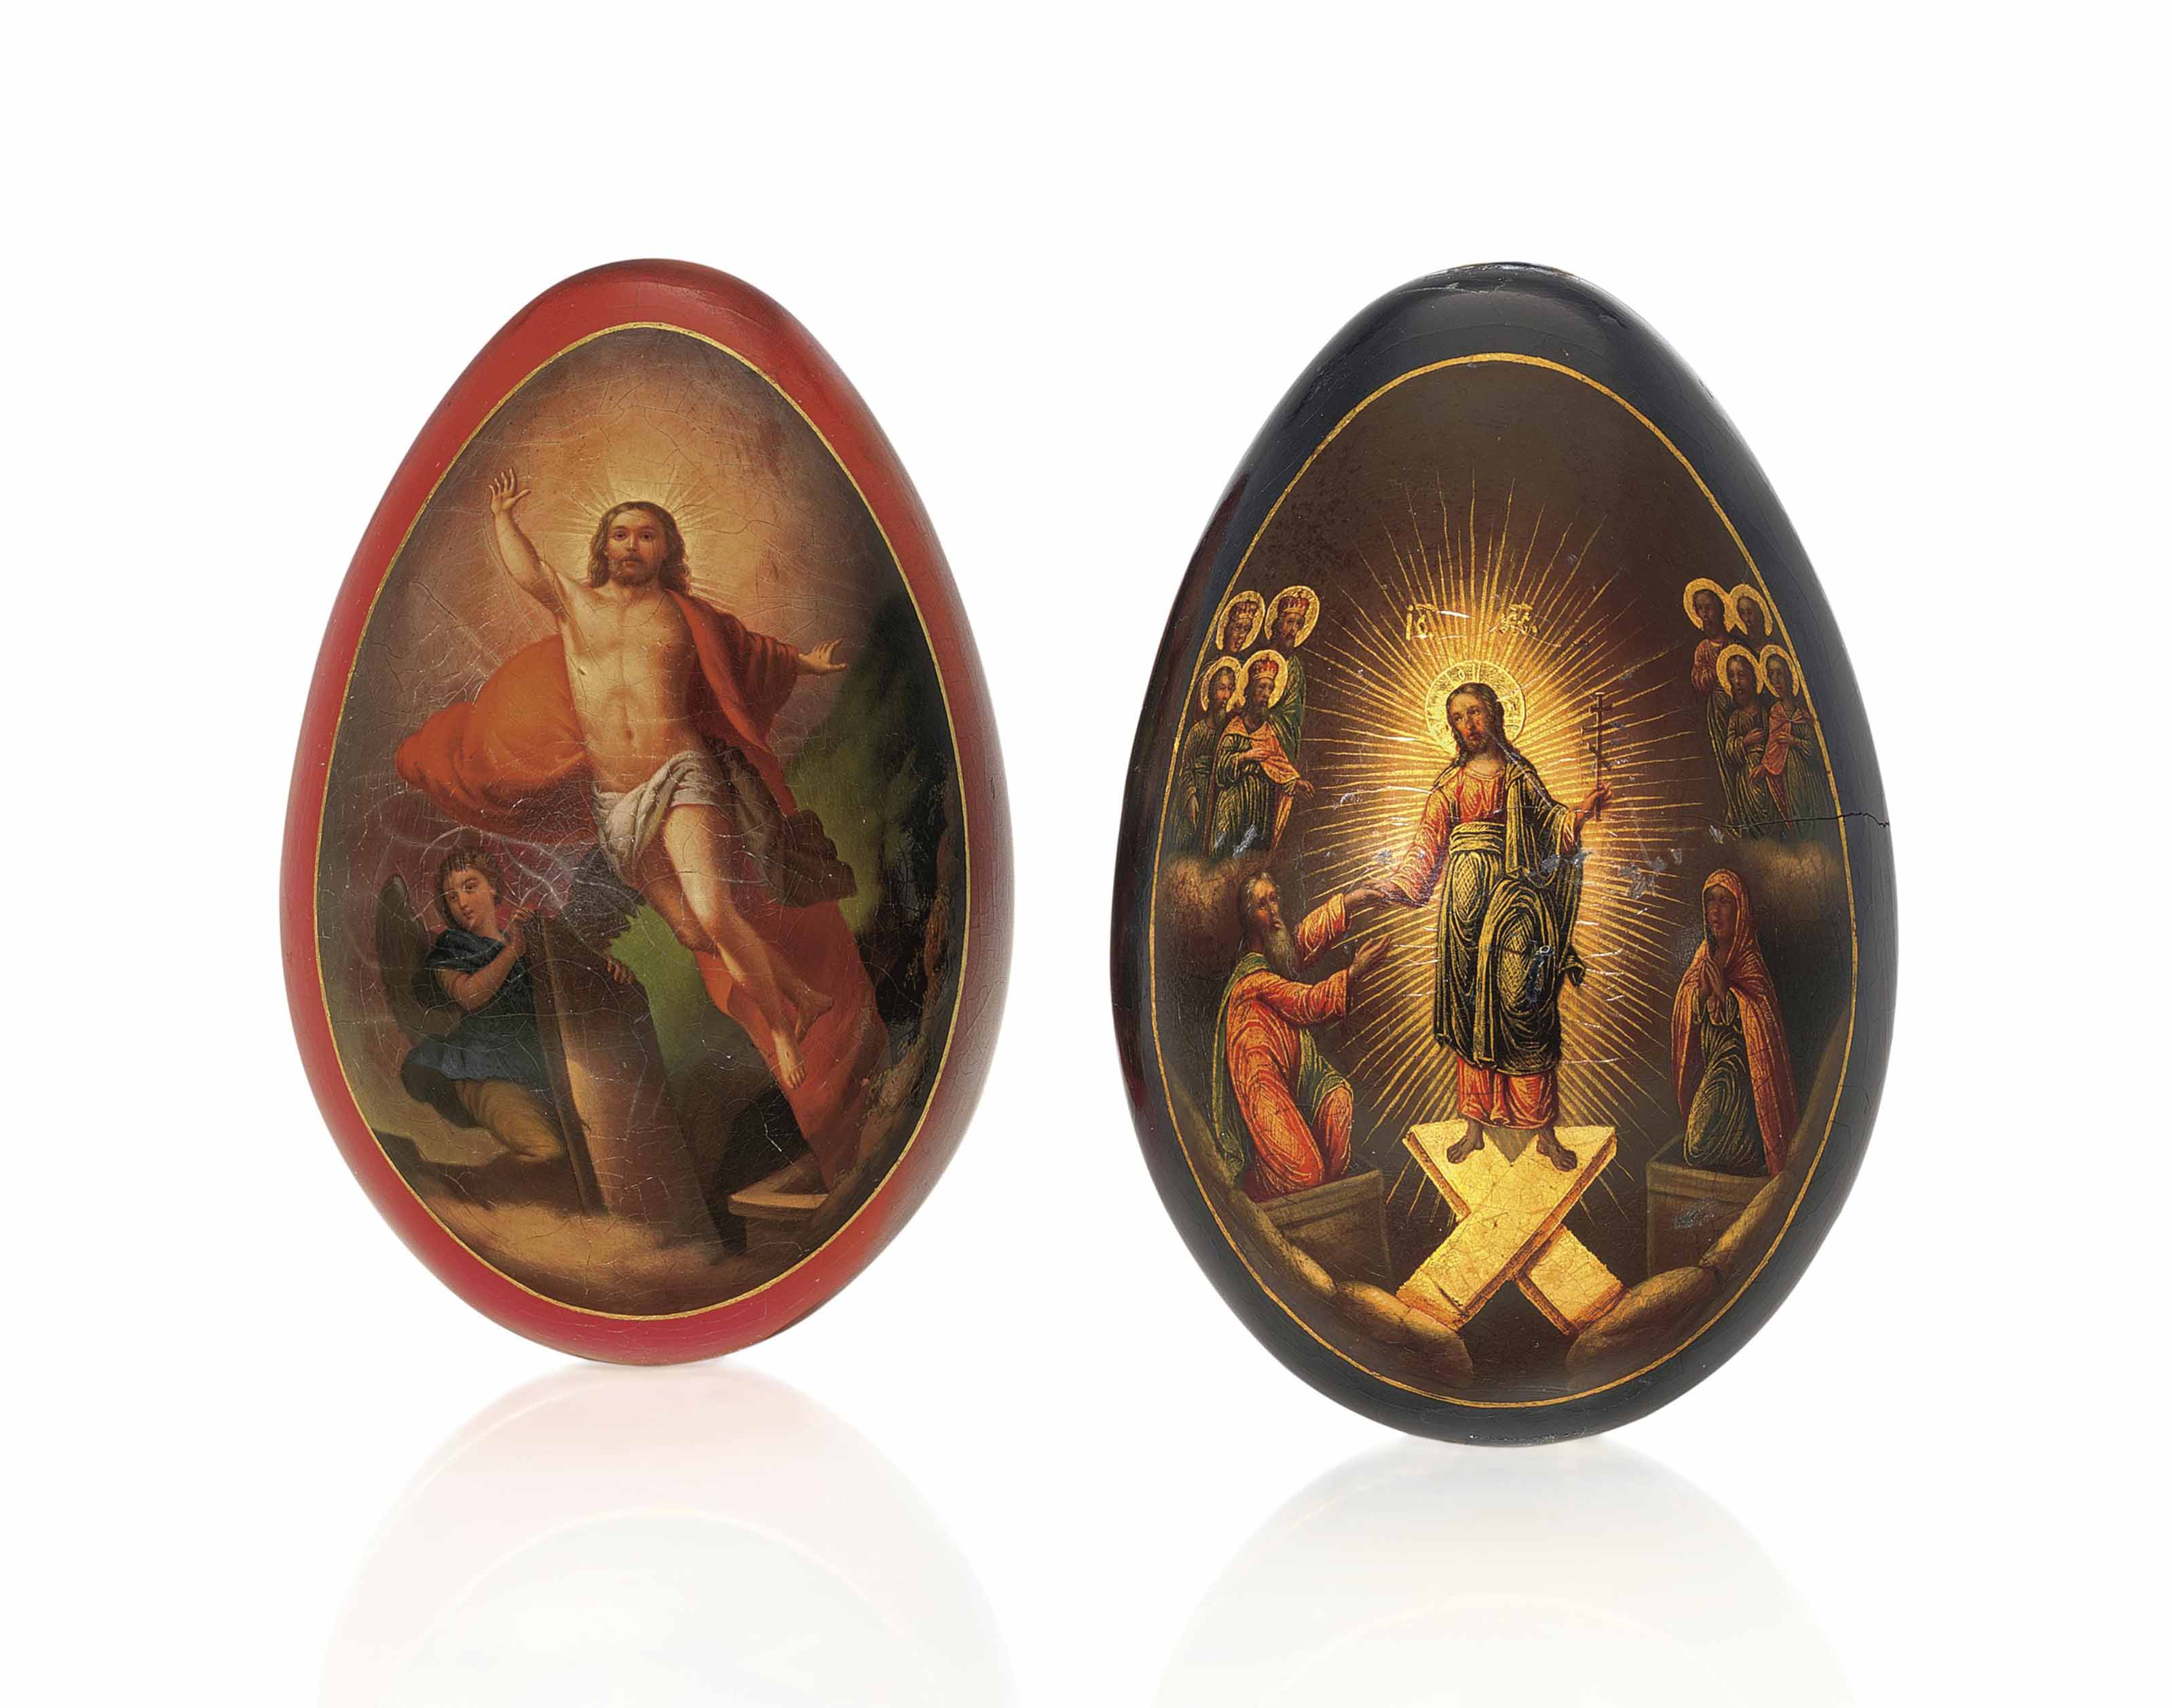 TWO PAPIER-MACHÉ EASTER EGGS